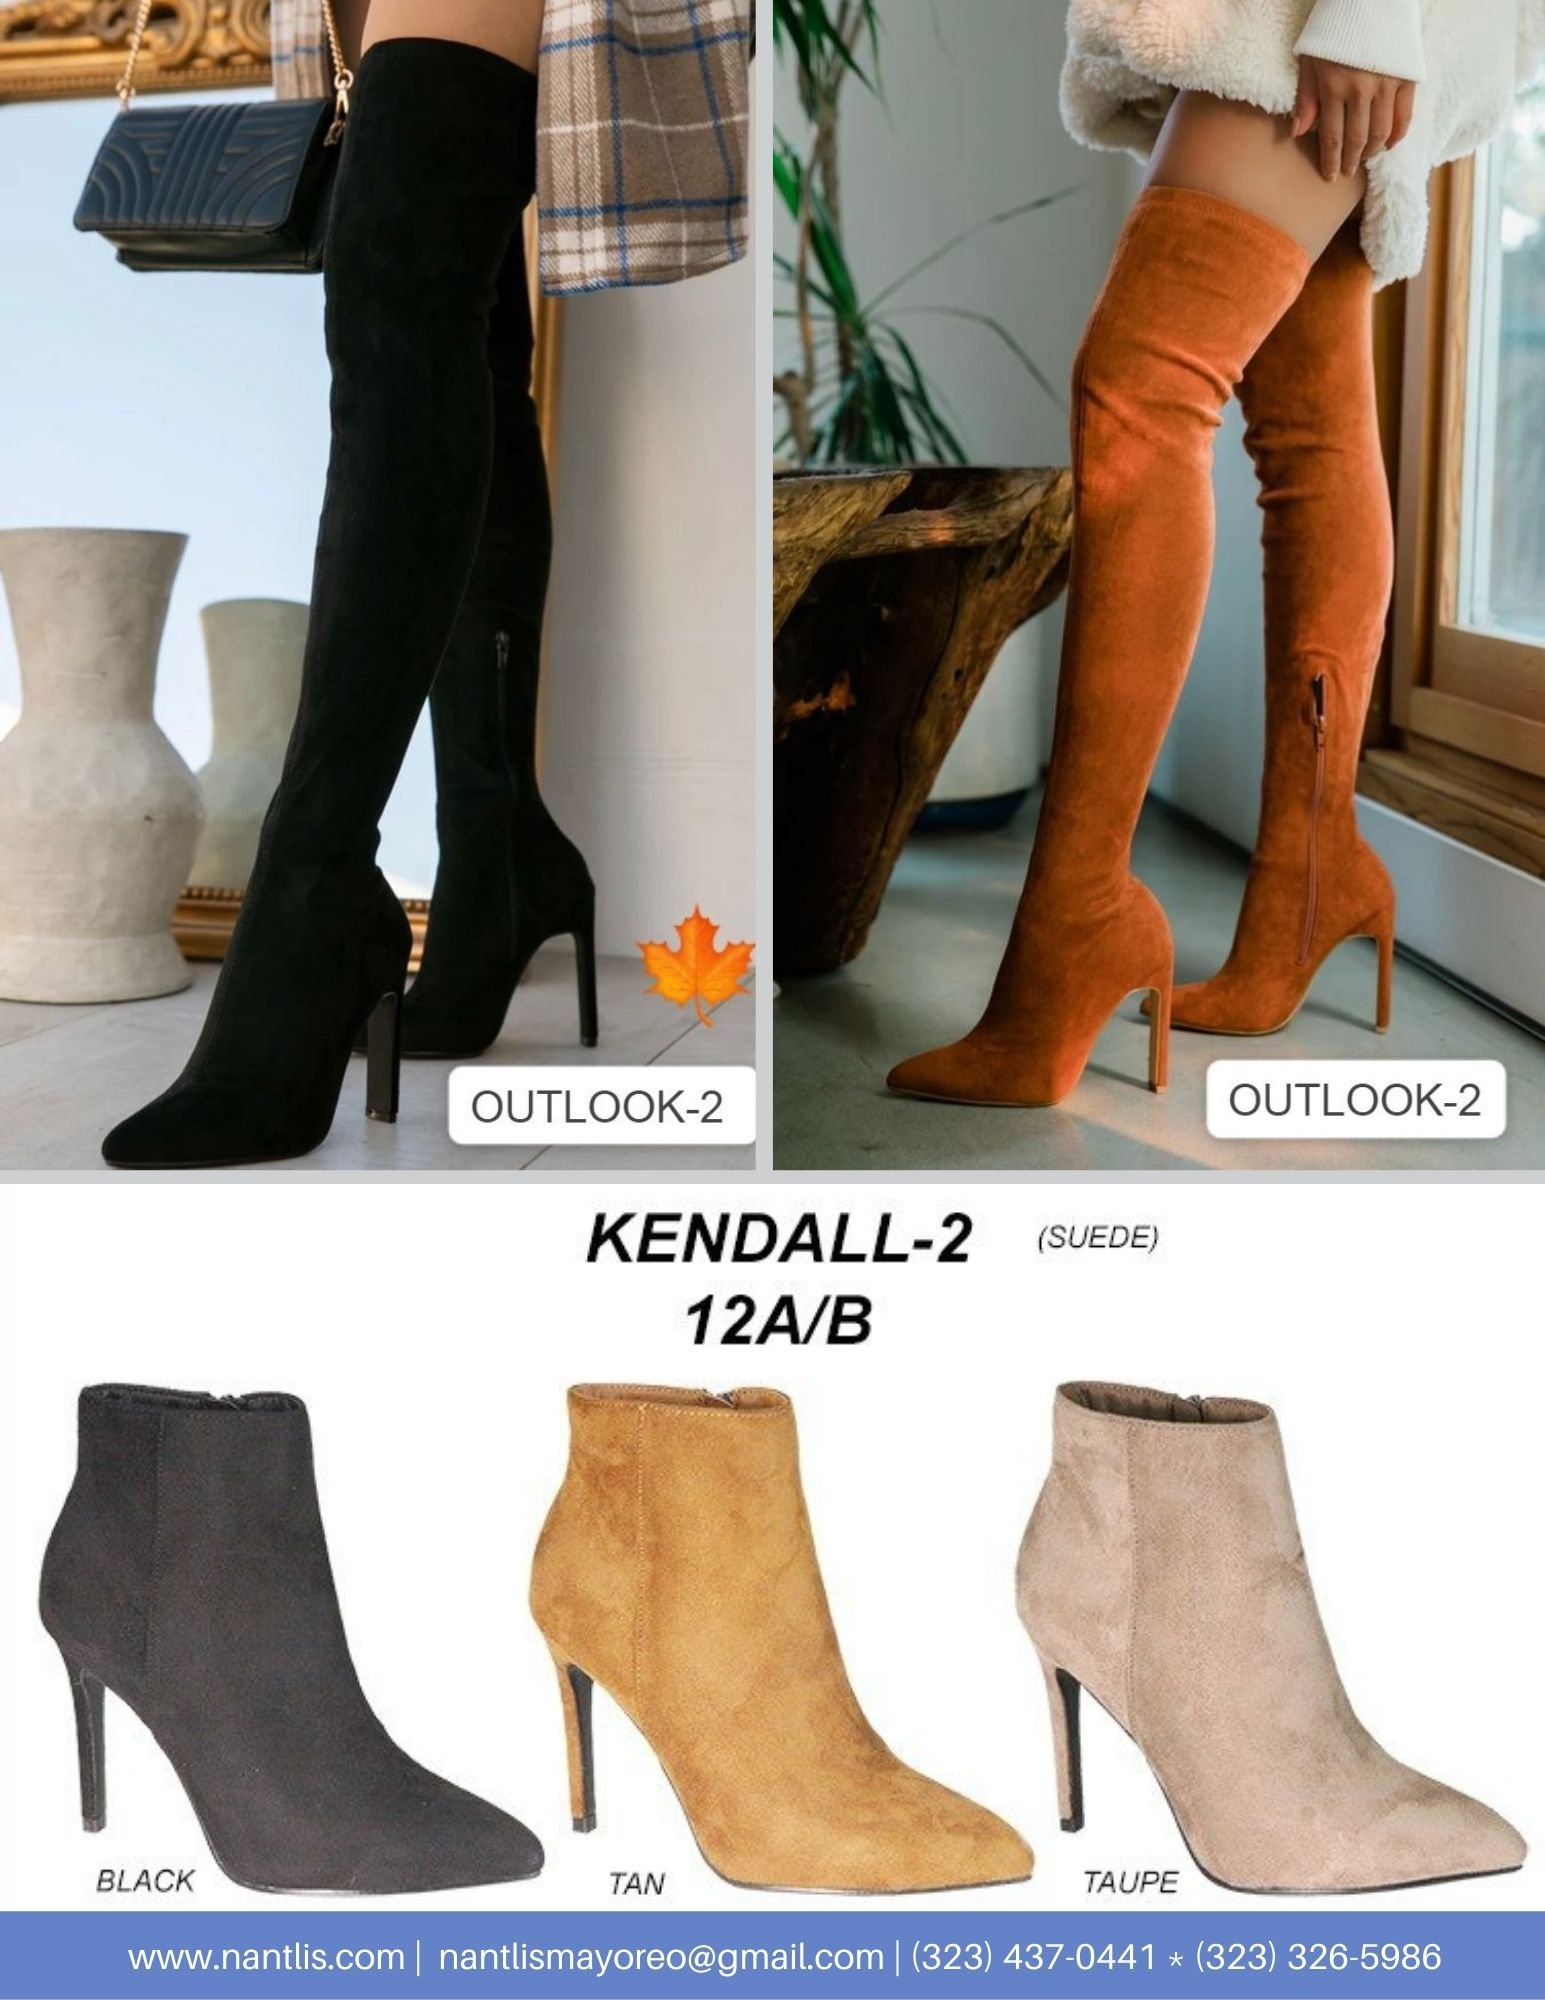 Nantlis Vol AN22 Botas Mujer mayoreo Catalogo Wholesale boots for women page 10